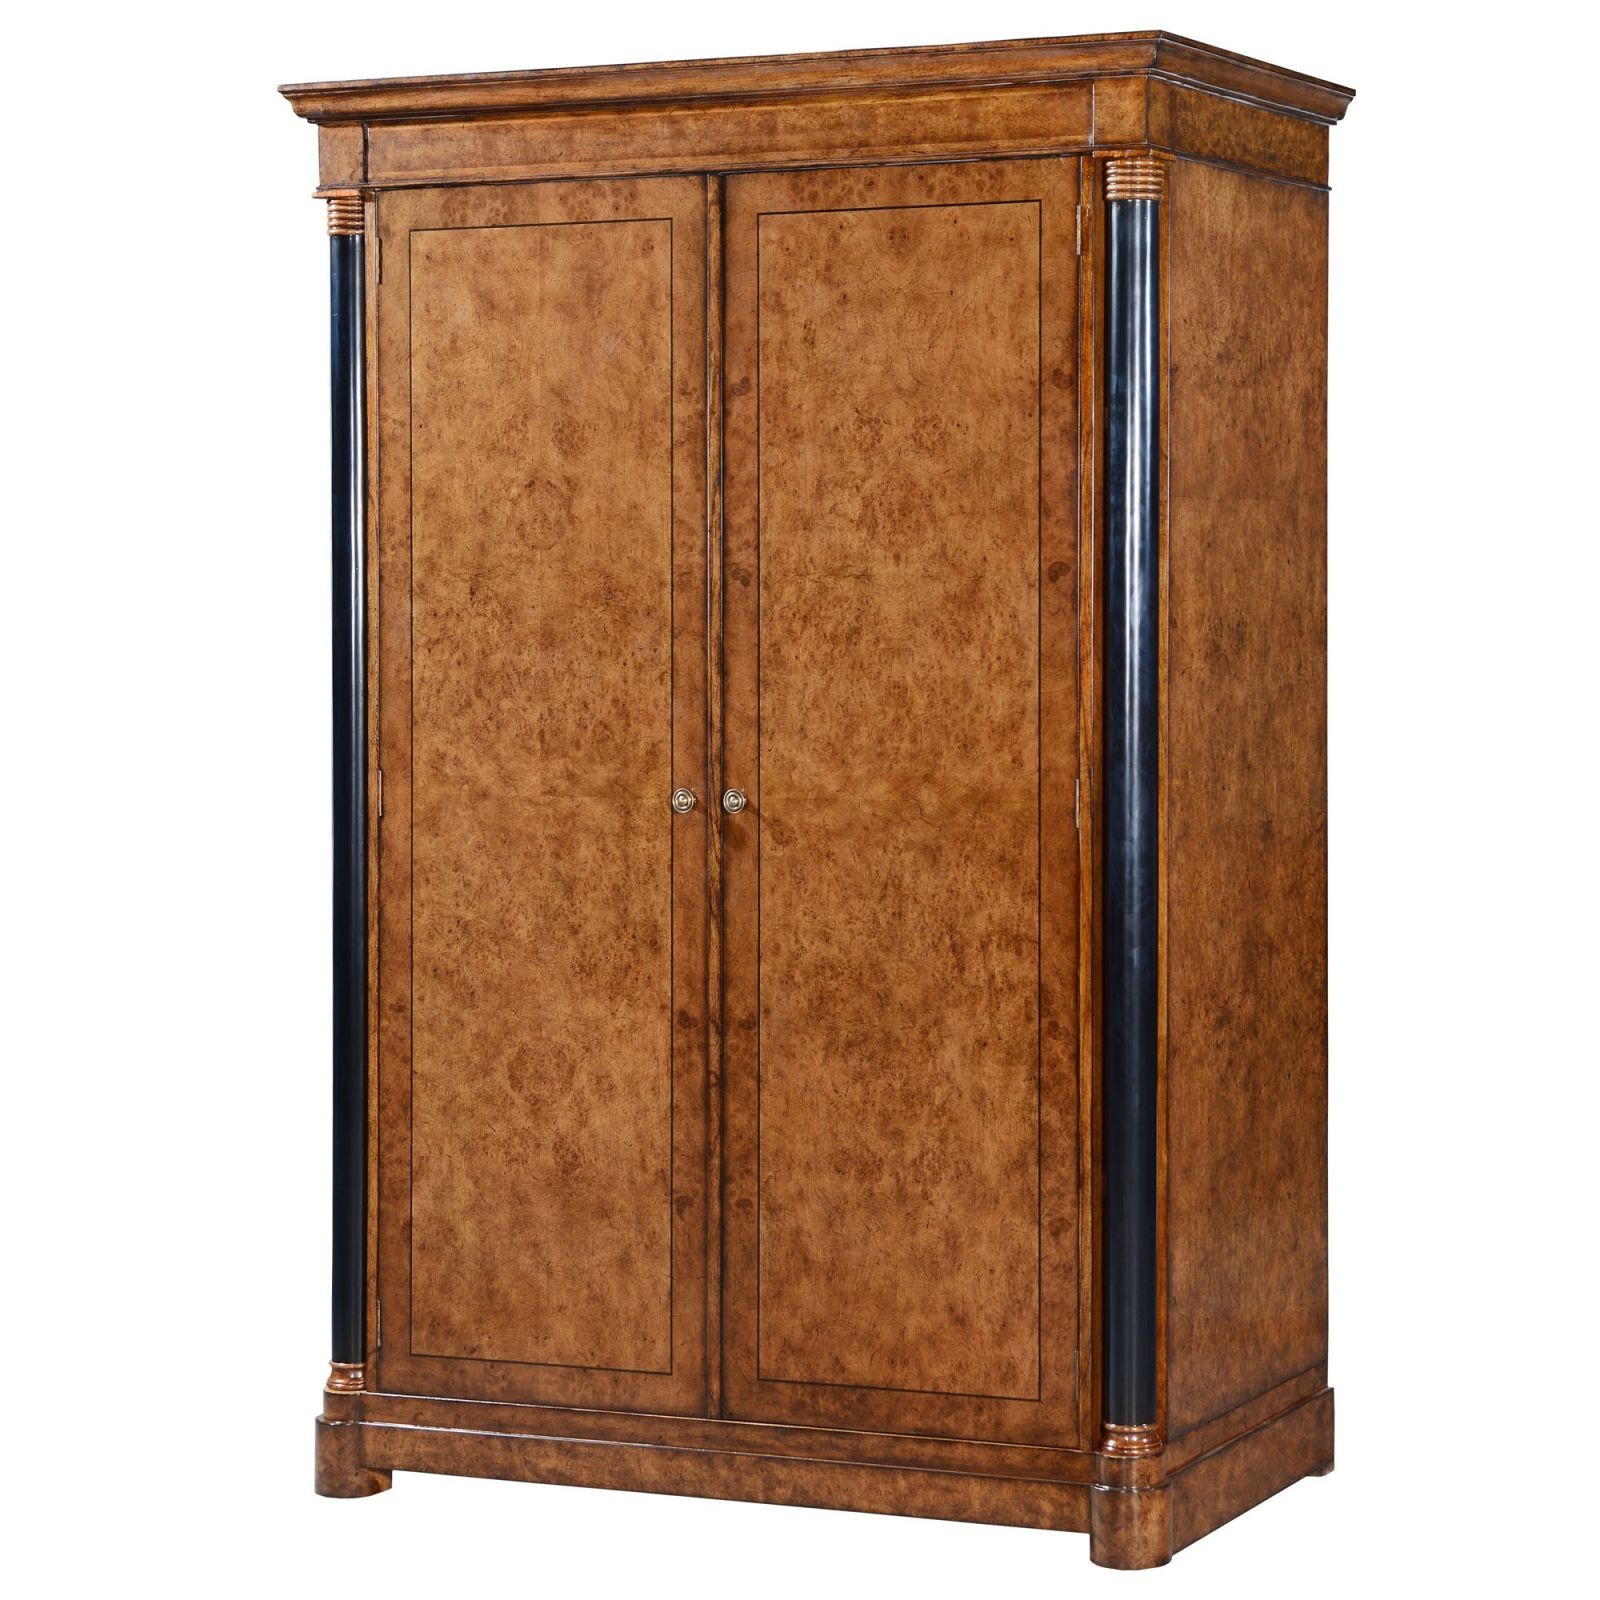 Empire style burr oak wardrobe